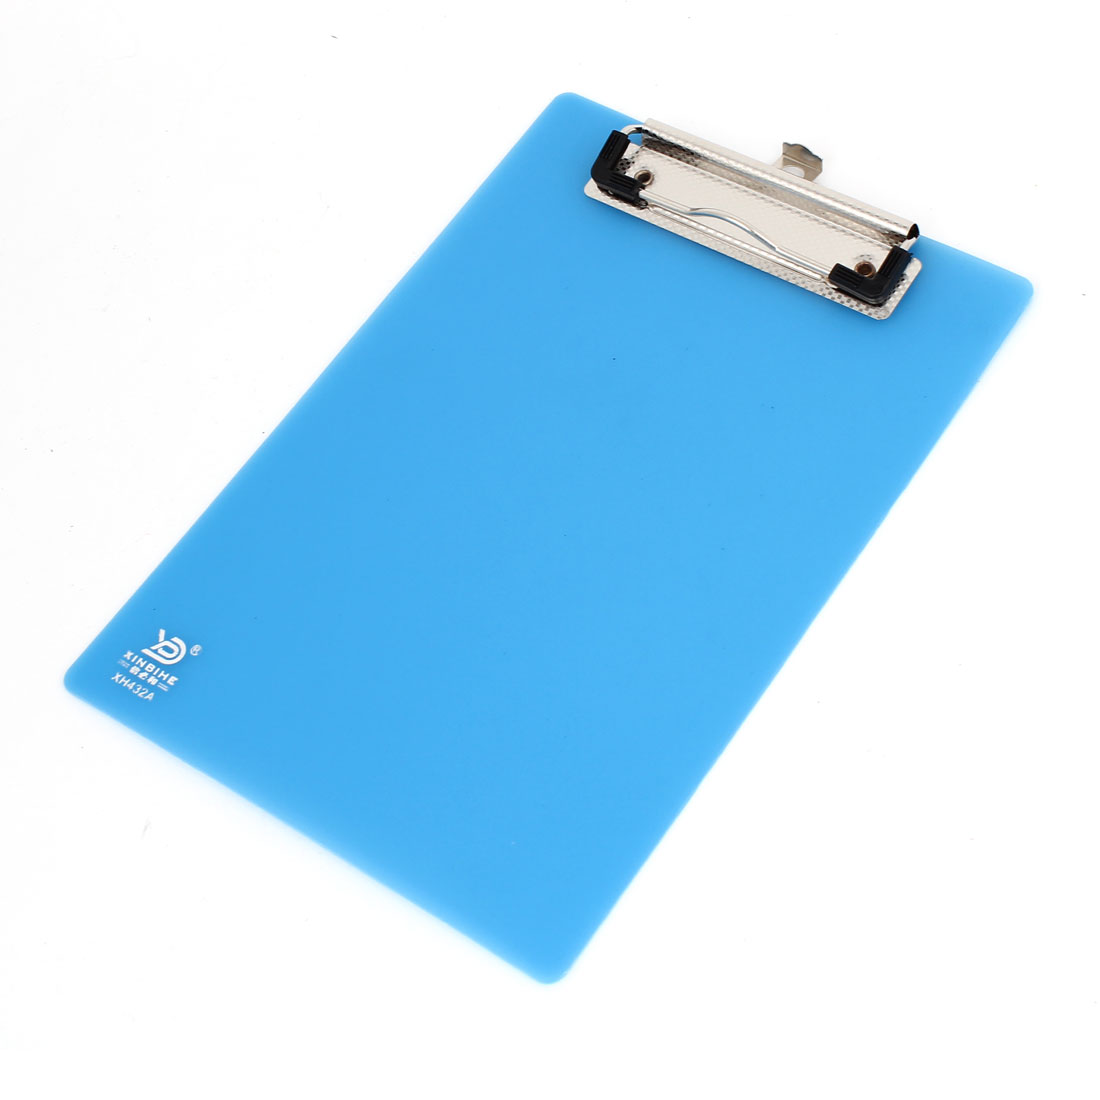 Office A5 Paper Holder Plastic Writing Board Clipboard 230 x 160mm Light Blue